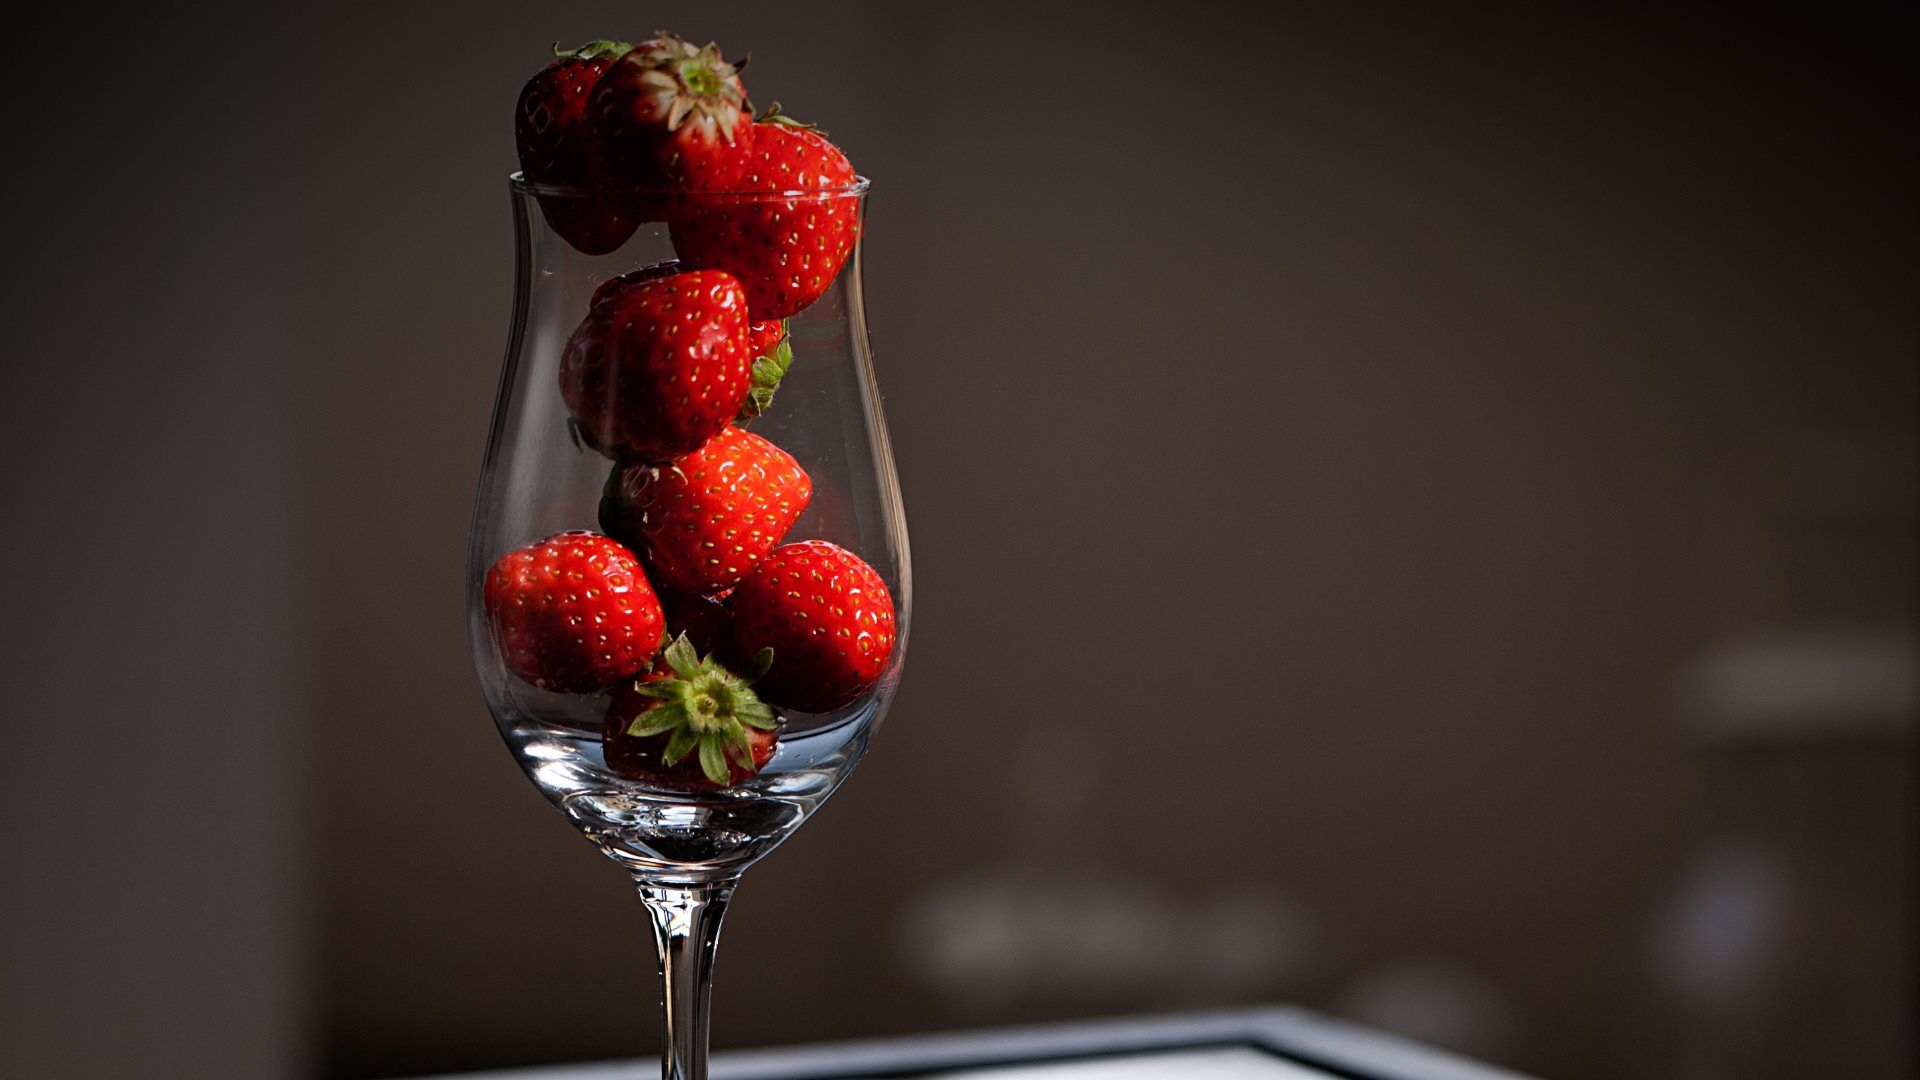 Download Hd Wallpaper Of Strawberry Juice: Awesome Strawberries In Glass HD